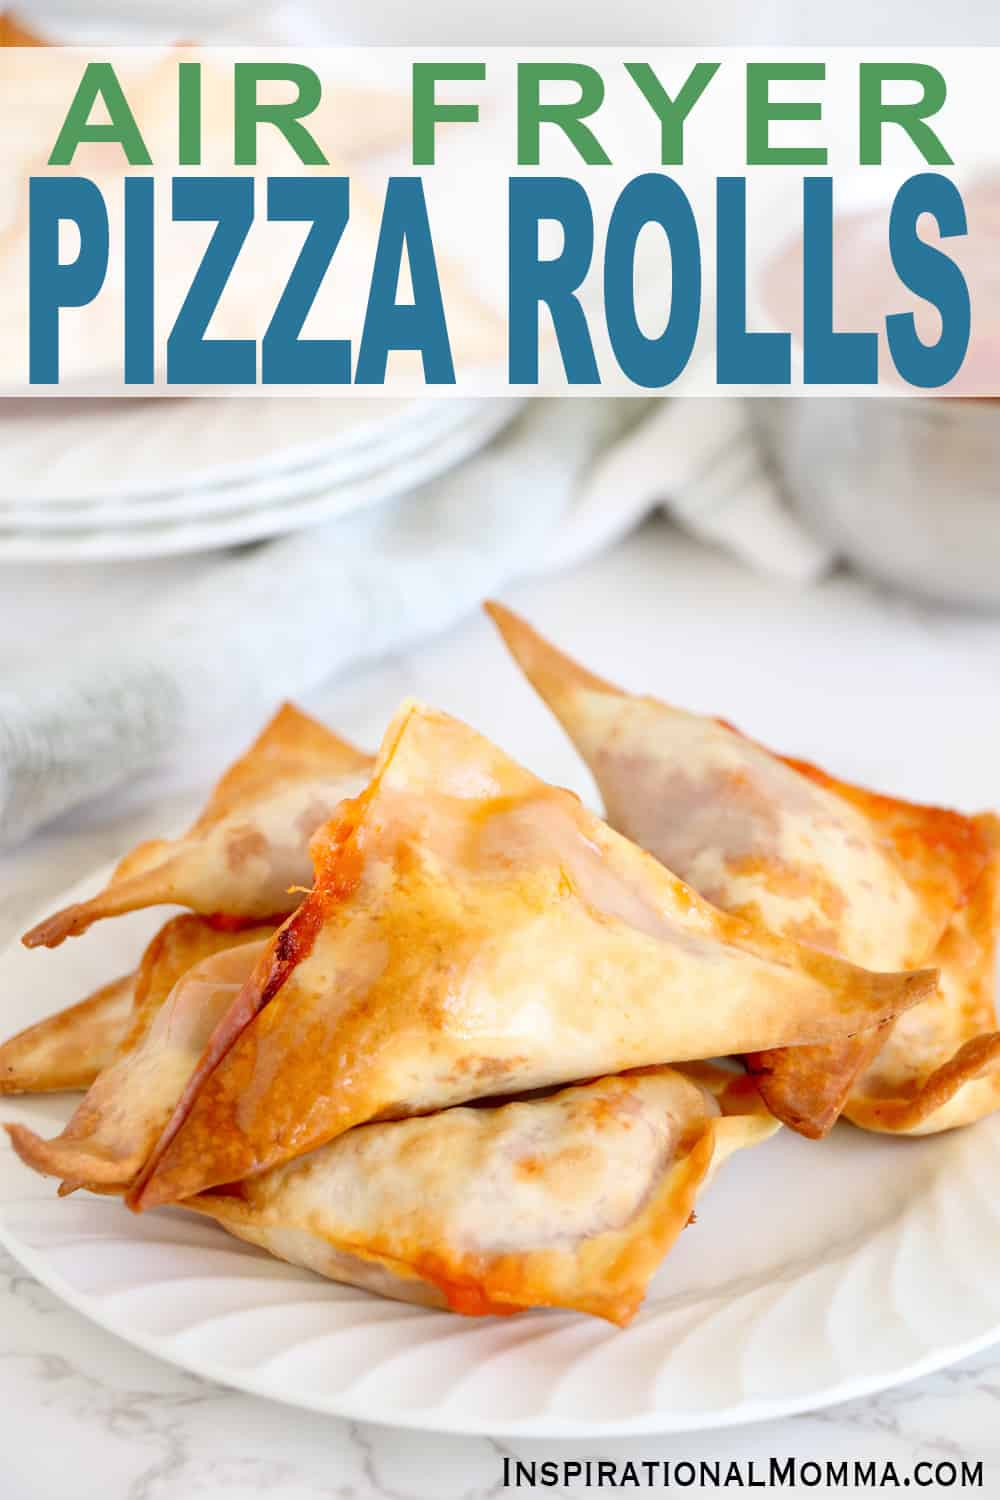 Picture of Air Fryer Pizza Rolls with Air Fryer Pizza roll written in text on image.  This image is for Pinterest.